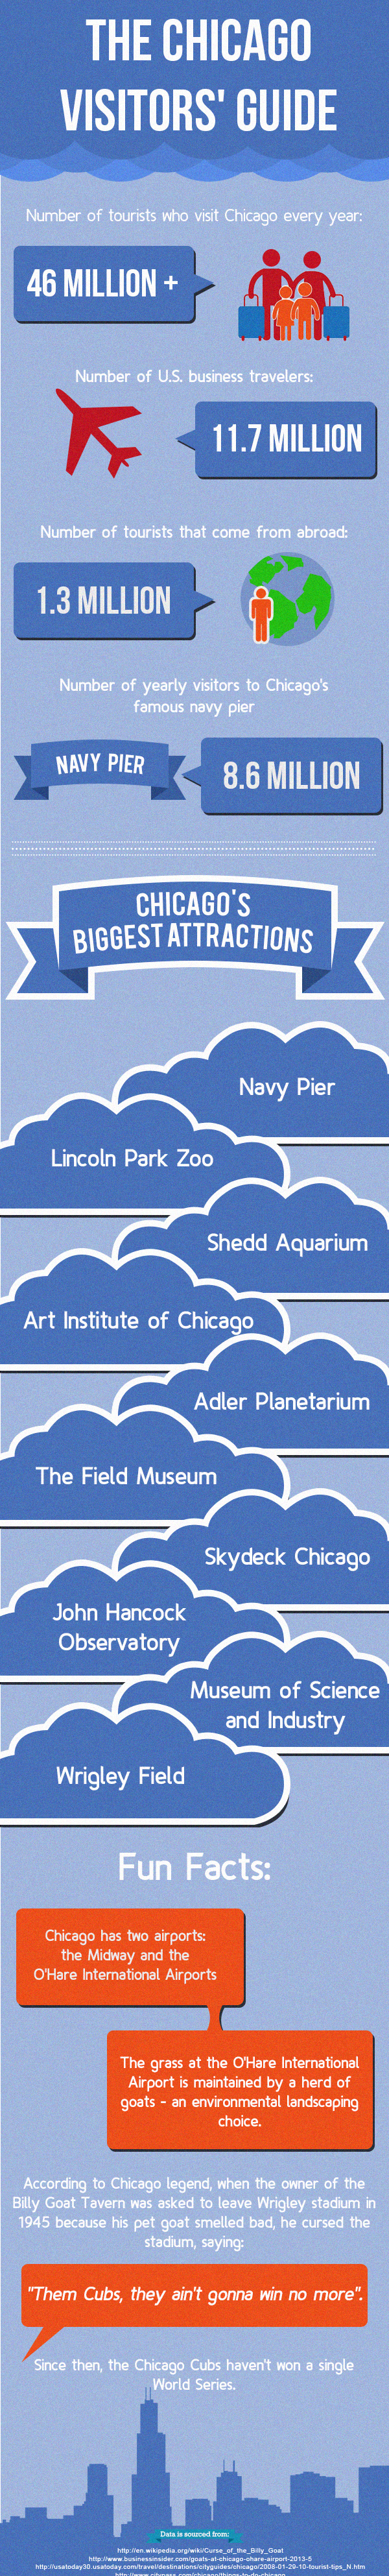 chicago-visitor-guide-echo-limousine-infographic